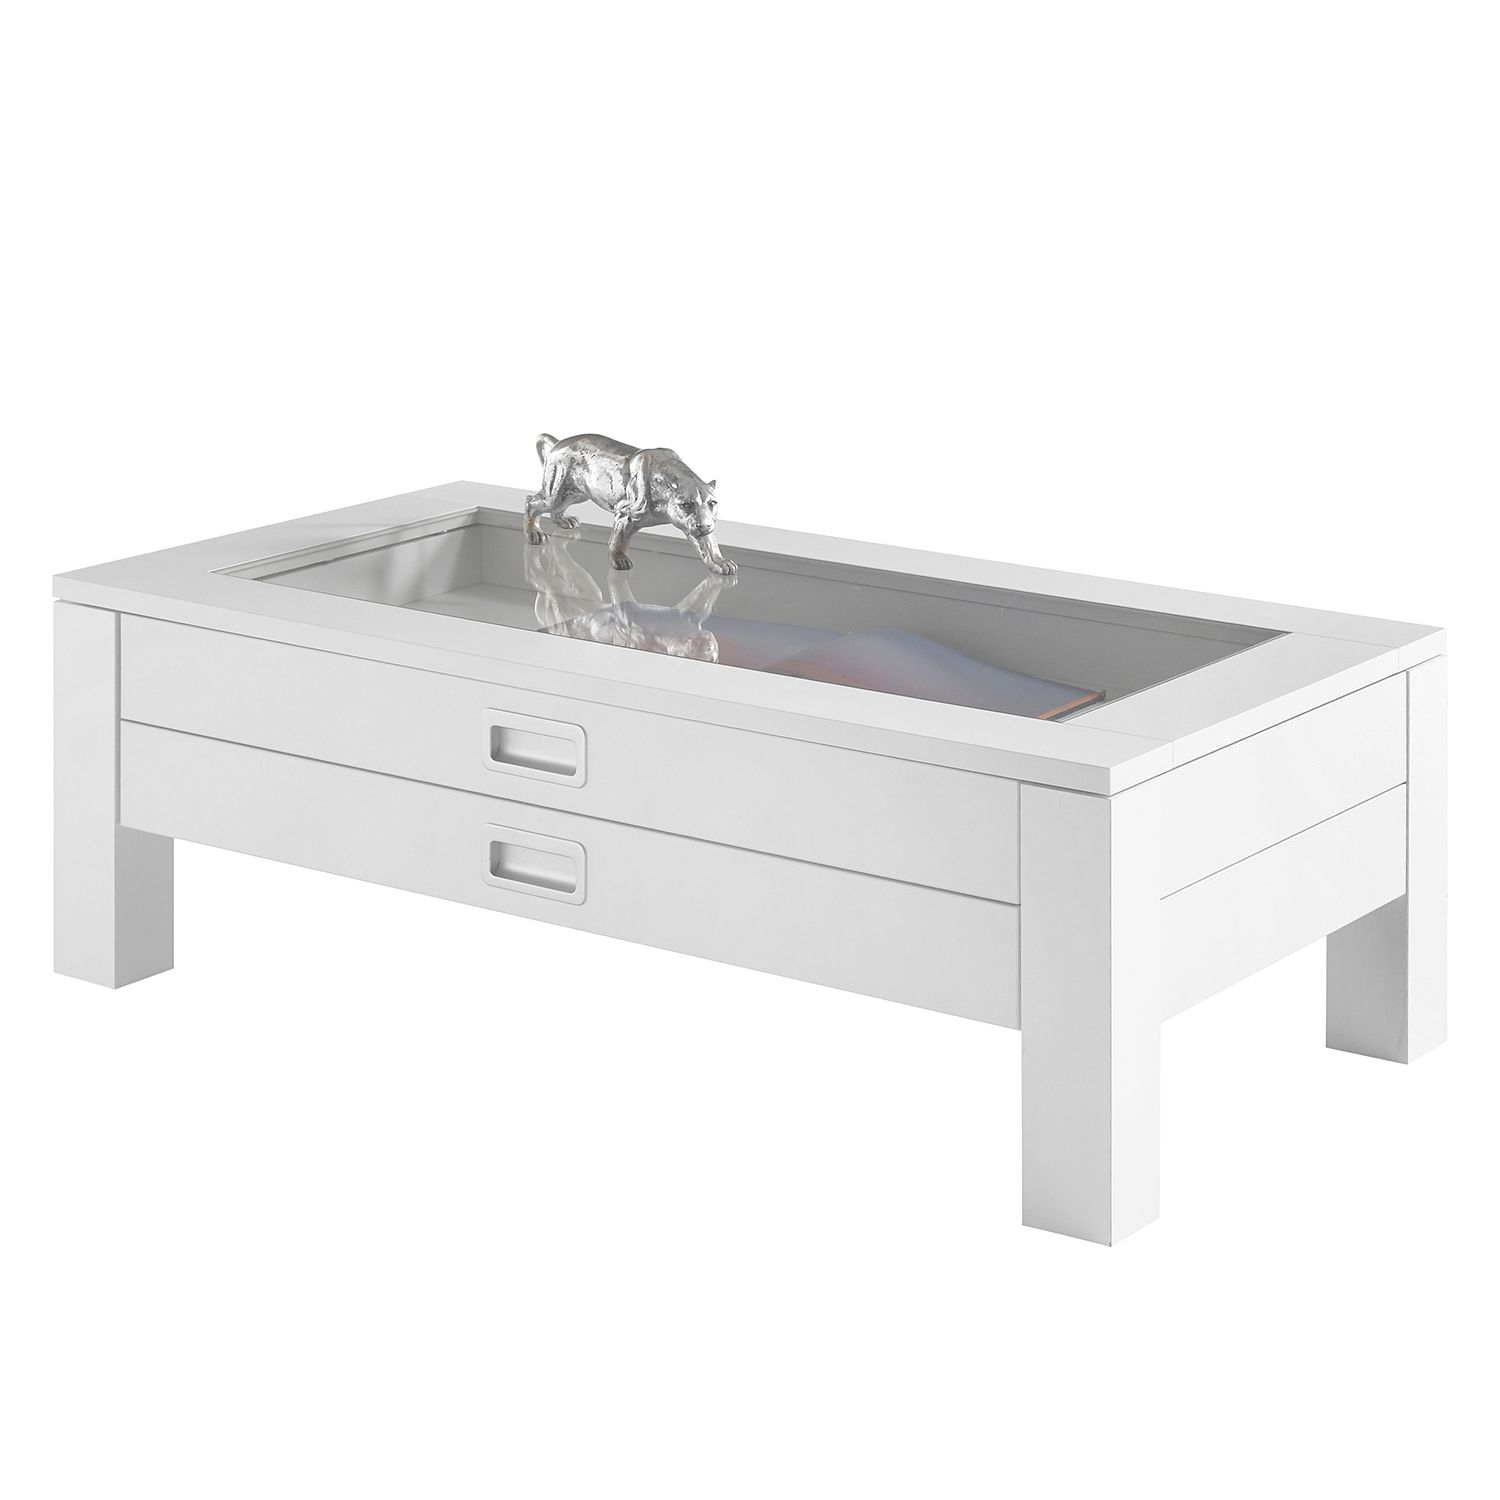 Table basse Renwer - Blanc, mooved